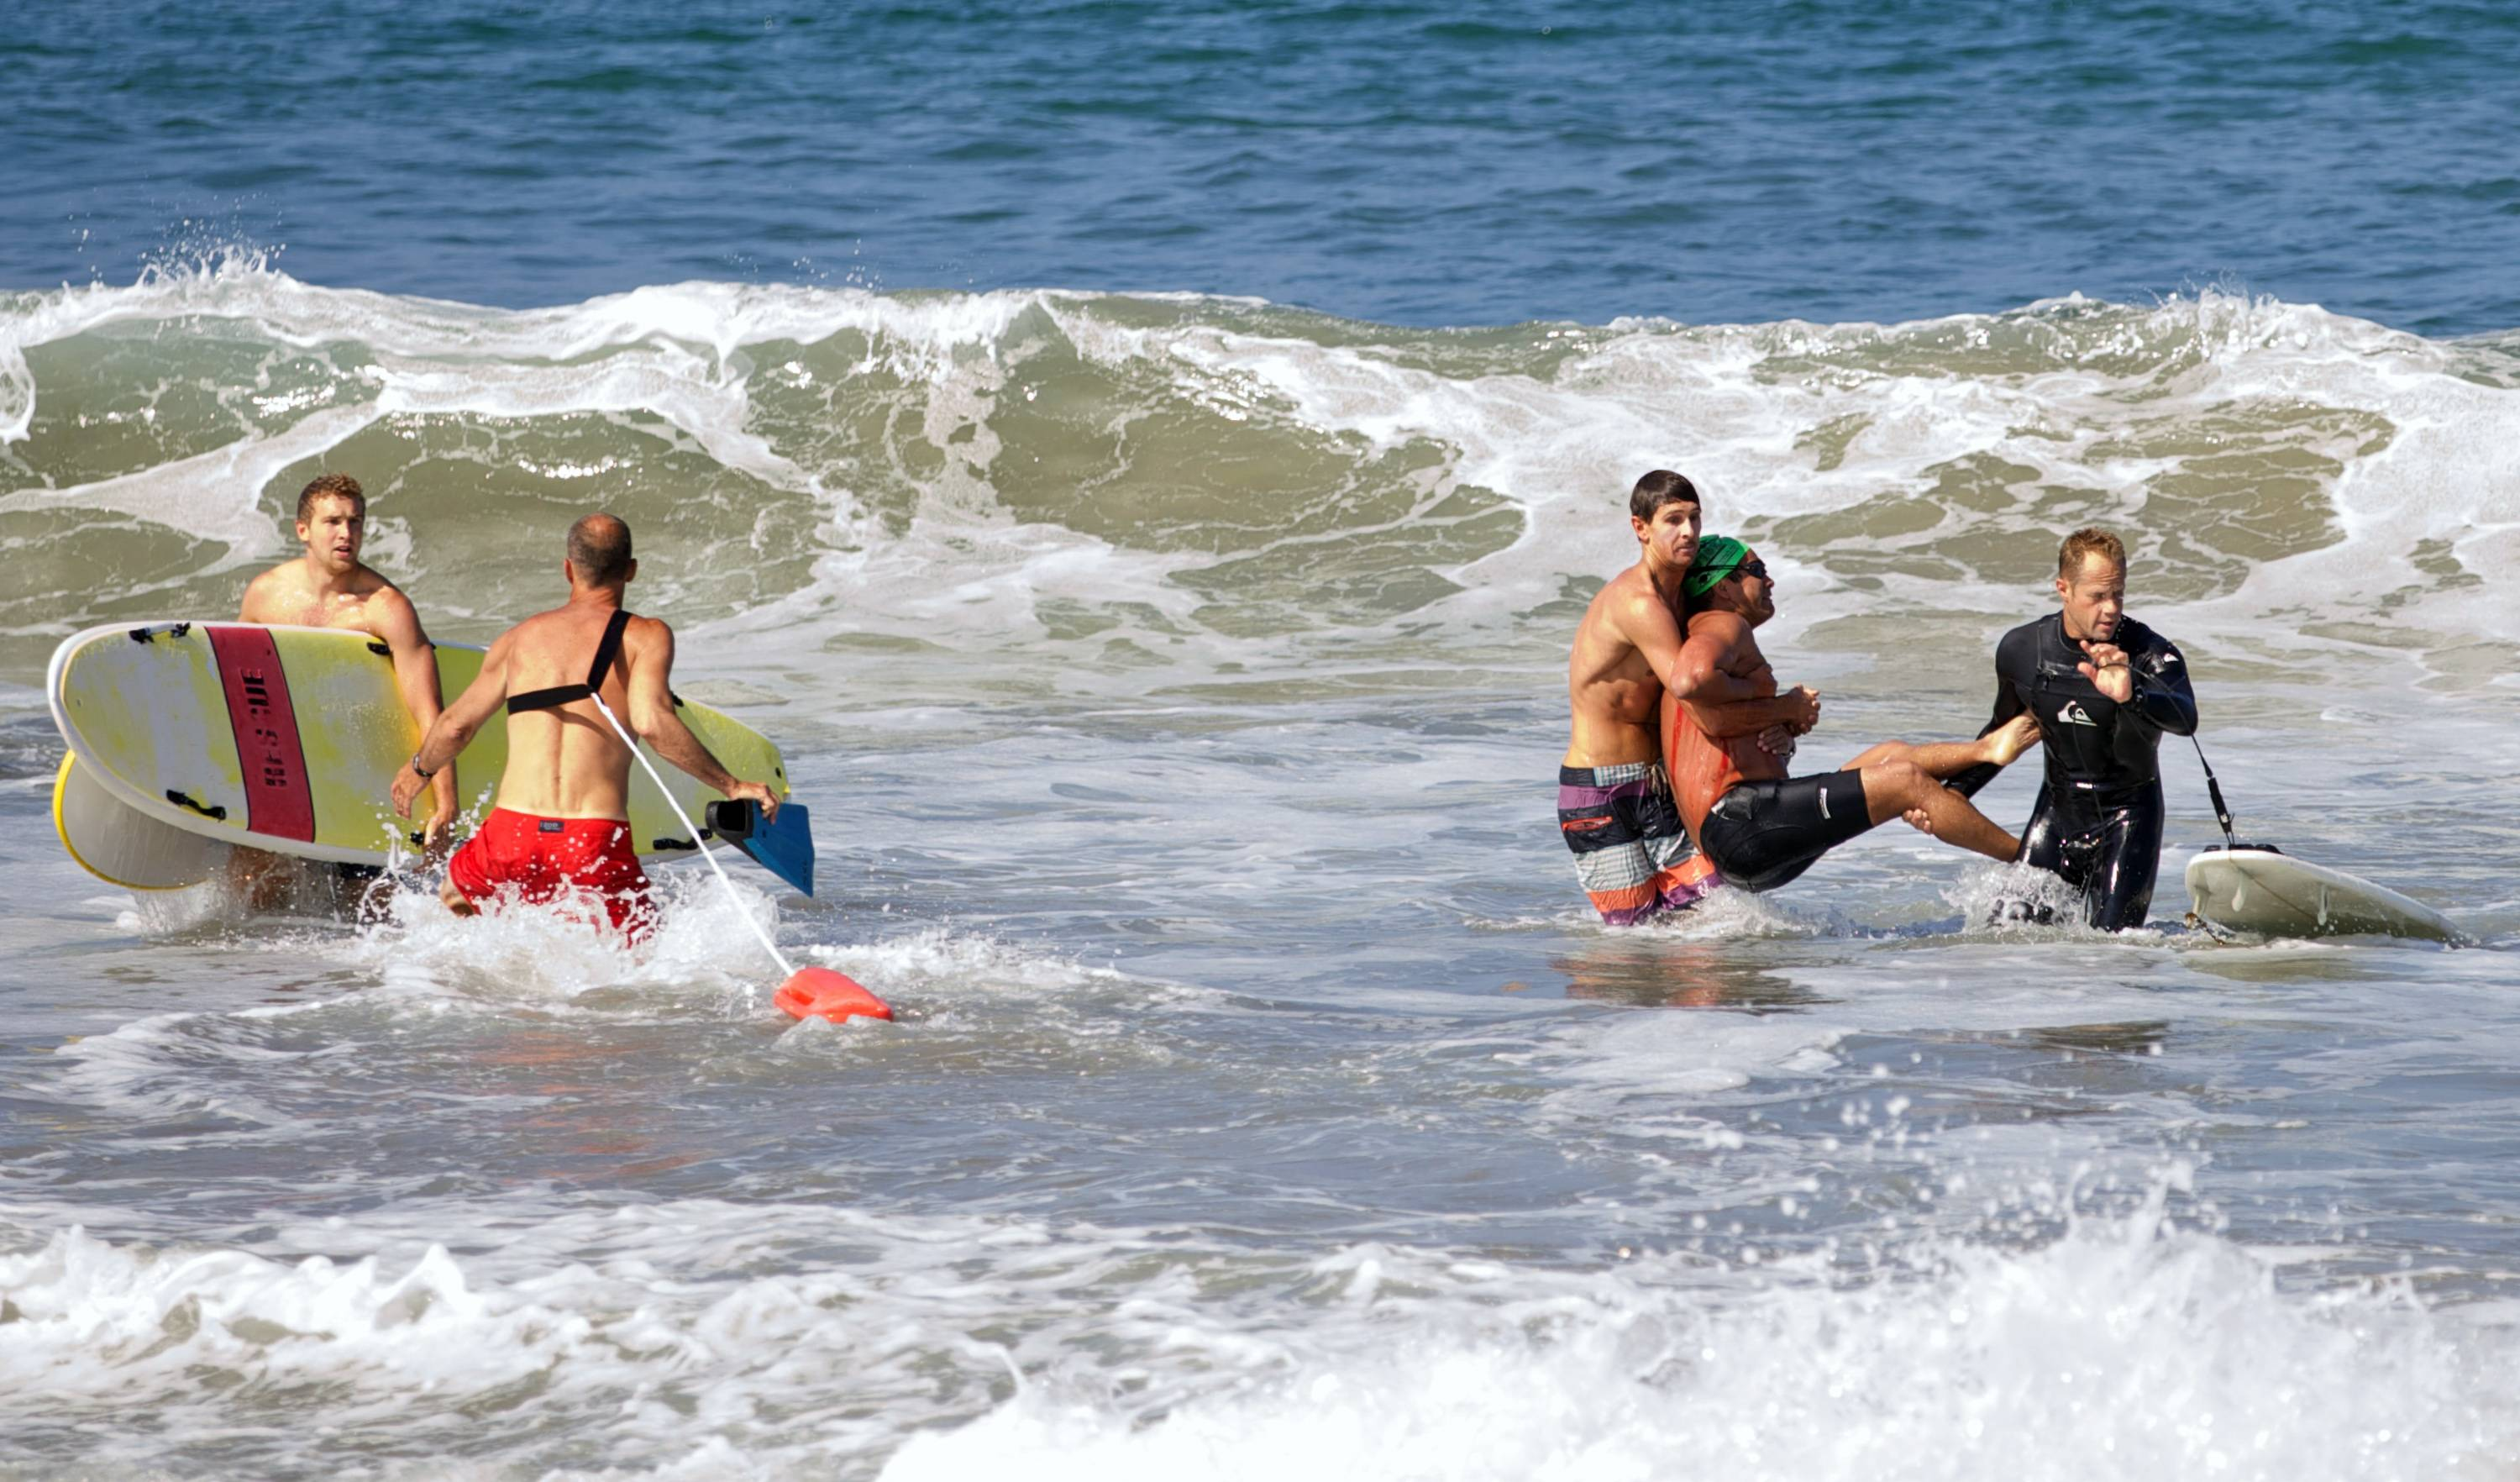 Two men carry a swimmer, second from right, after he was bitten by a great white shark Saturday, as lifeguards close in at left in the ocean off Southern California's Manhattan Beach. The man, who was with a group of long-distance swimmers when he swam into a fishing line, was bitten on a side of his rib cage according to Rick Flores, a Los Angeles County Fire Department spokesman. The man's injuries were not life-threatening and he was taken to a hospital conscious and breathing on his own, Flores said.